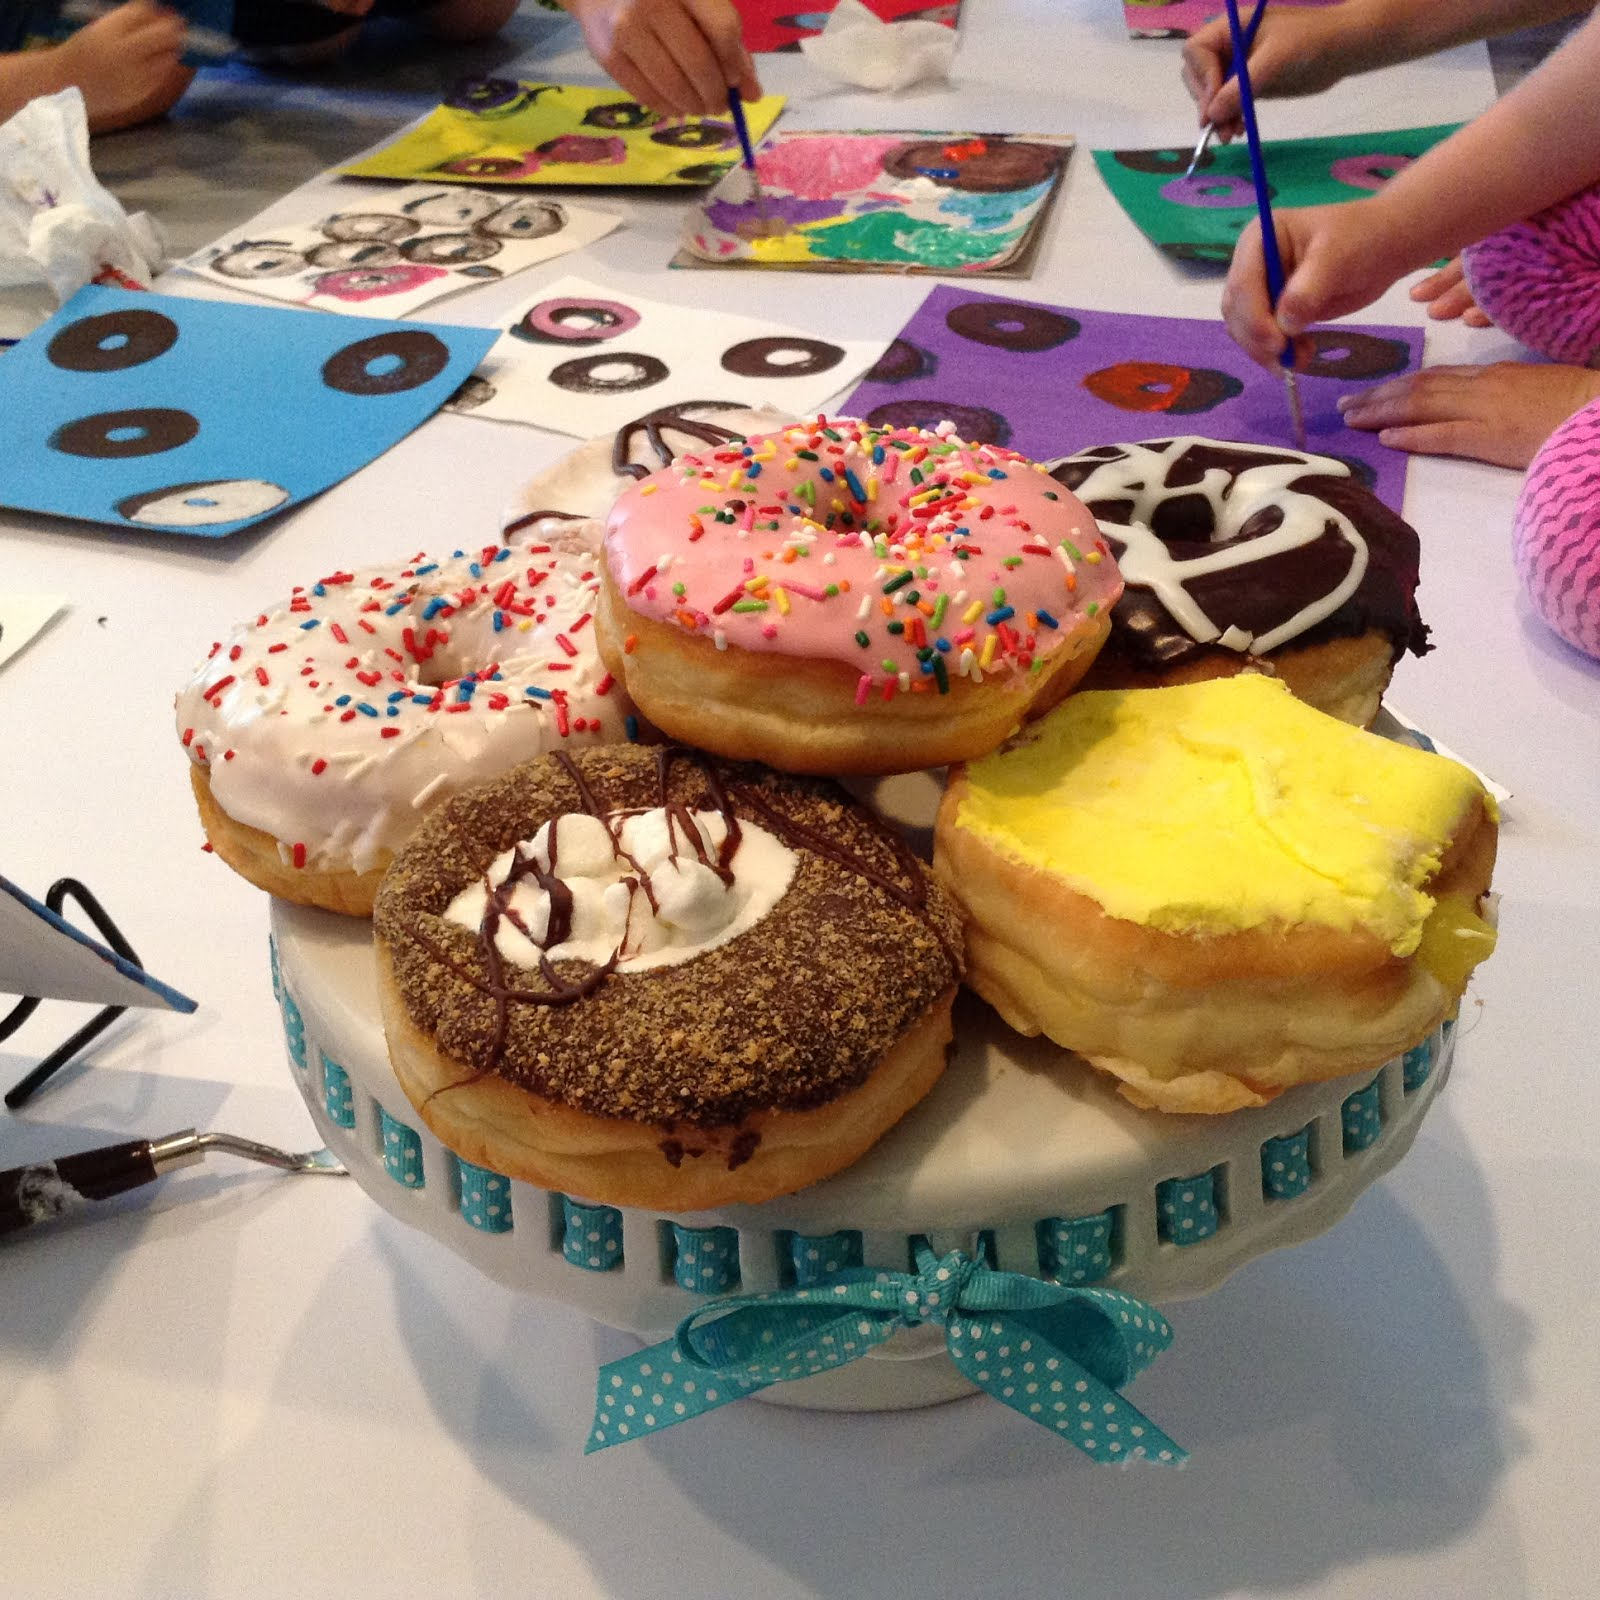 A weekend with wendell lesson plan - I Did This Lesson With A Couple Of Groups This Summer And I M So Excited To Share It With You Today I Plan To Do This Donut Painting With My 5th Grade